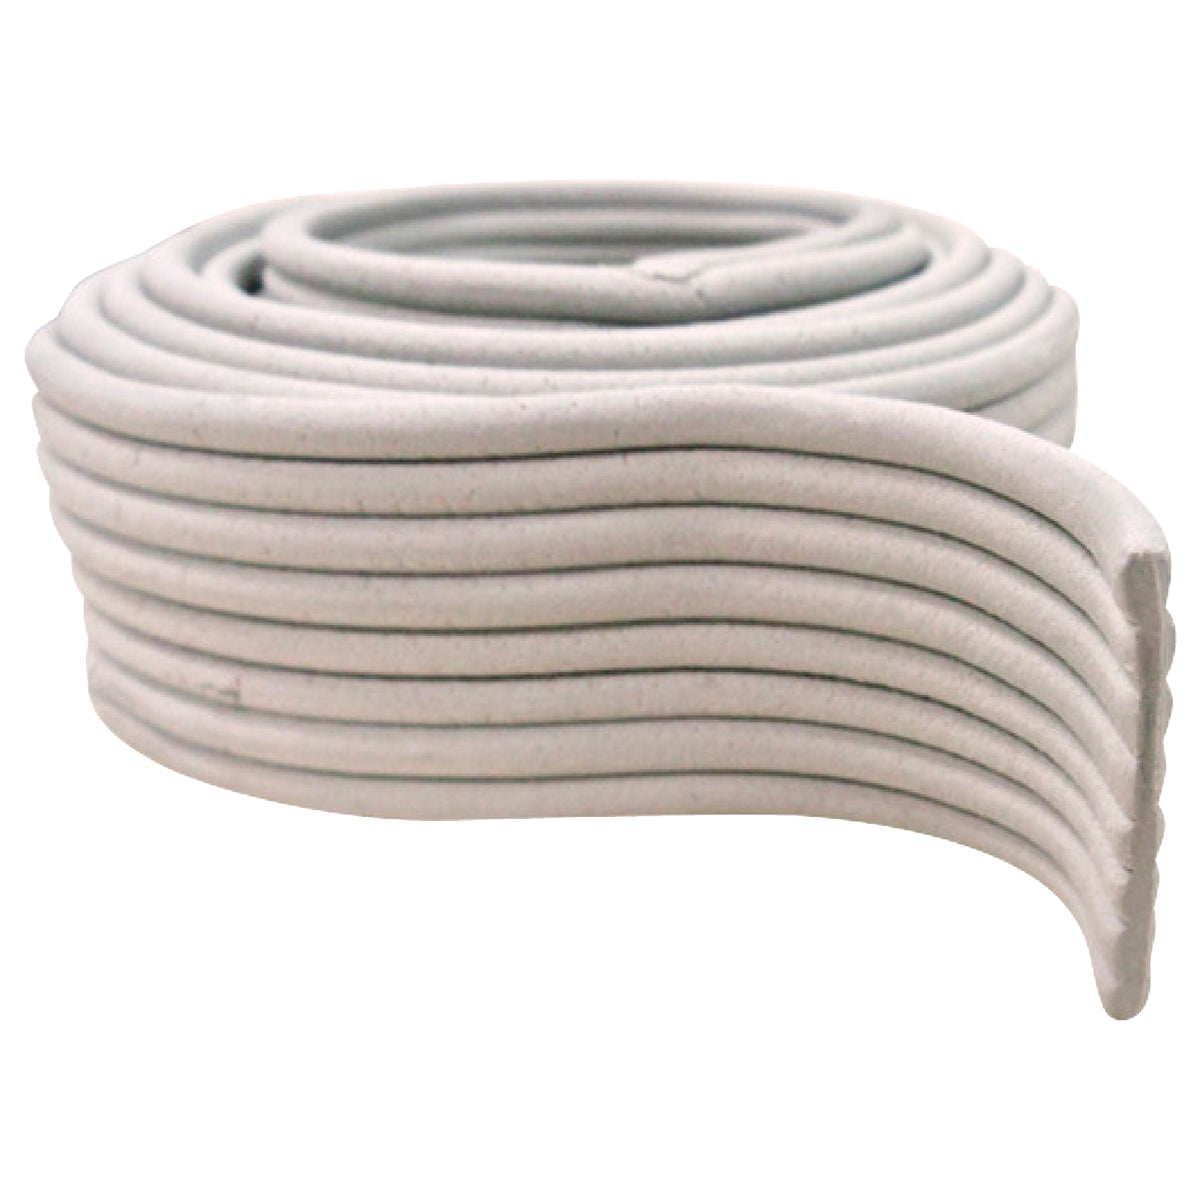 90' GRAY CAULKING CORD - B2 by Thermwell Prods Co